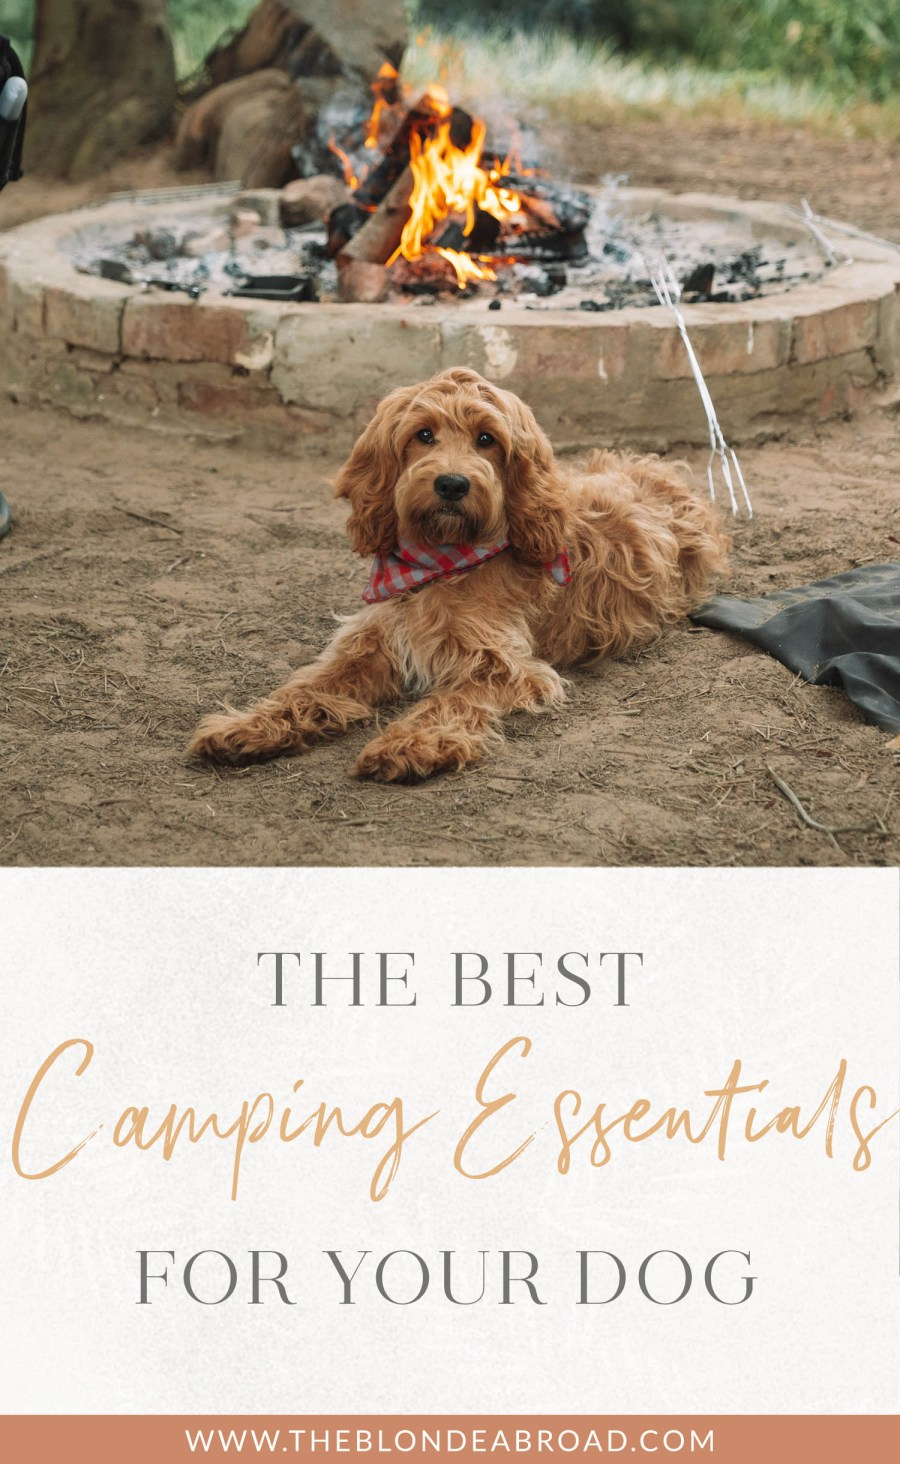 Camping Essentials for Your Dog